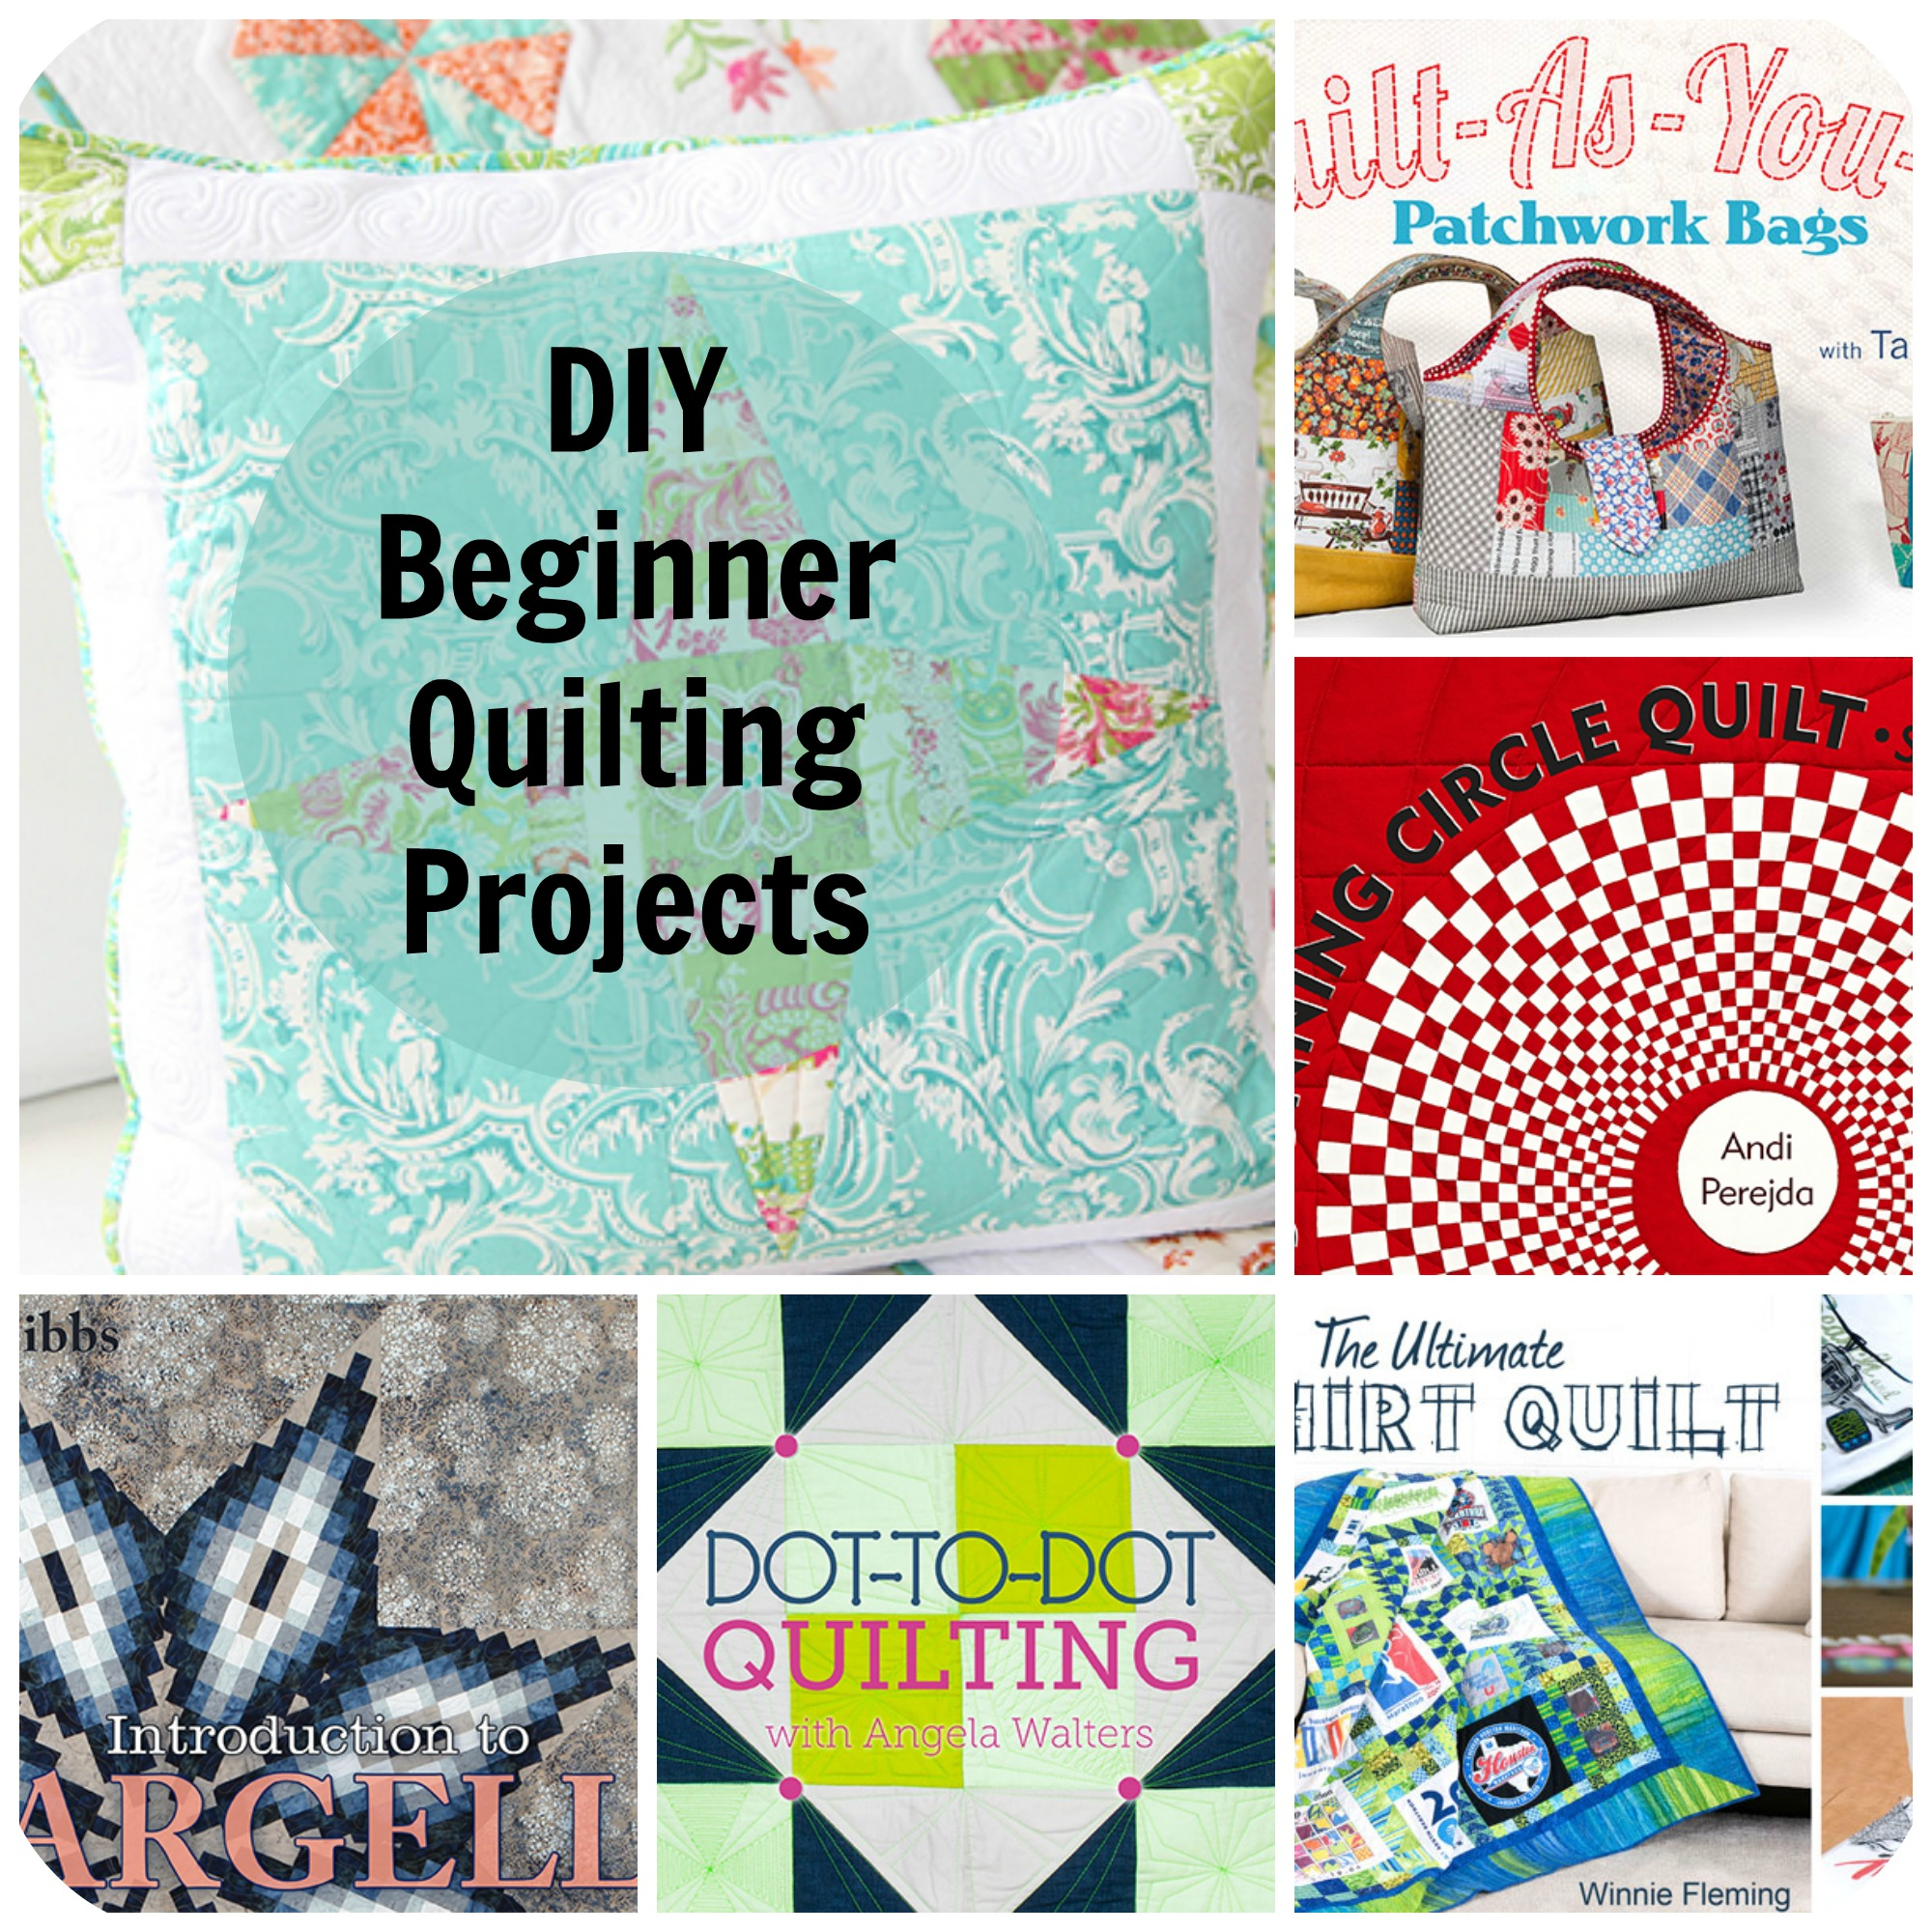 DIY Beginner Quilting Projects